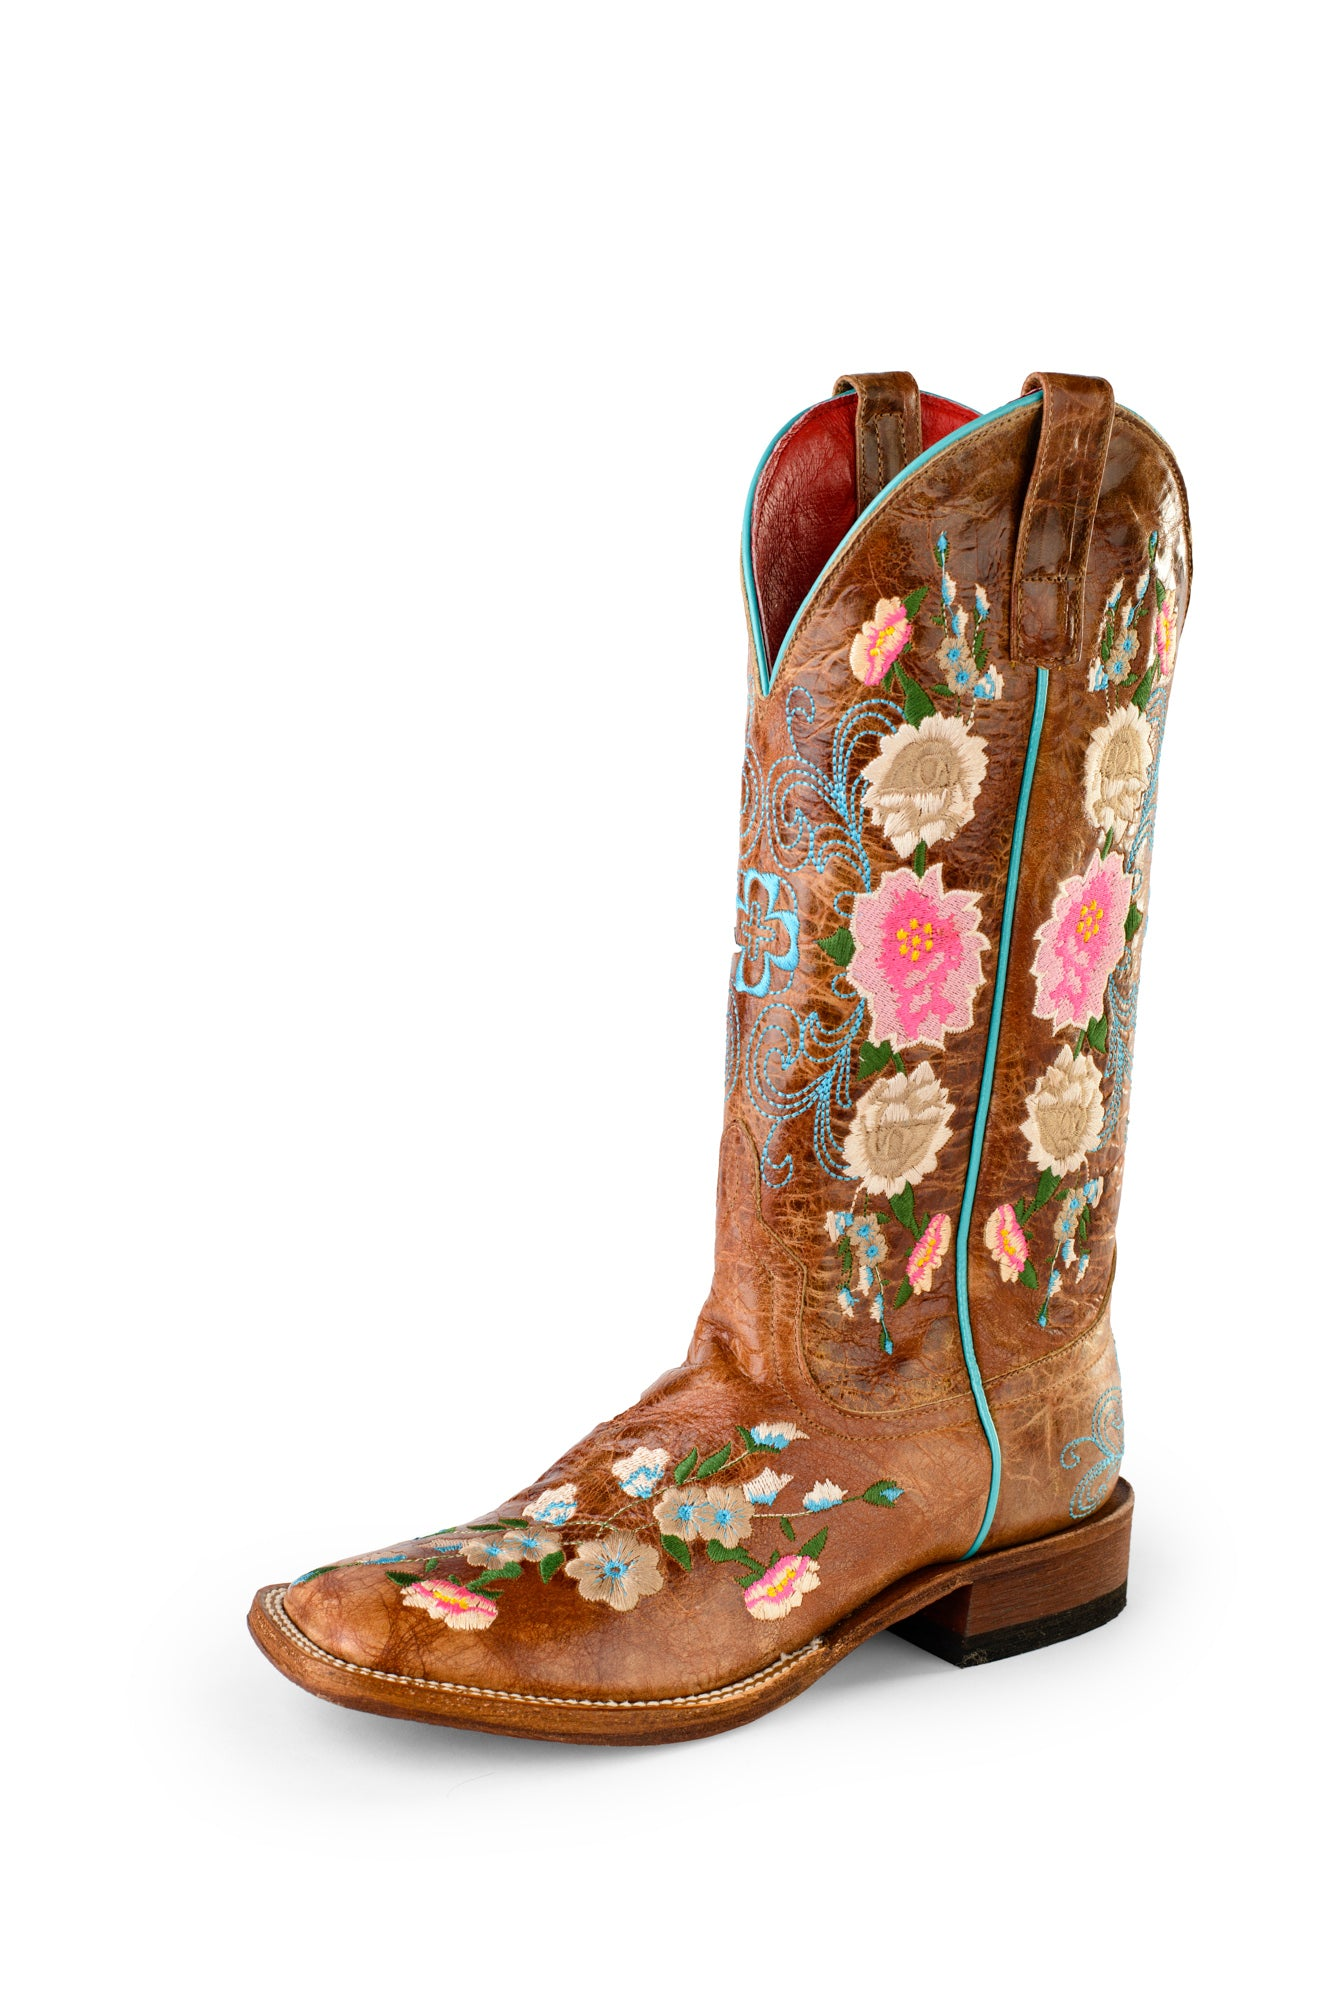 5655f3783a1 Macie Bean by Anderson Bean Youth Honey Leather Cowboy Boots Floral DB